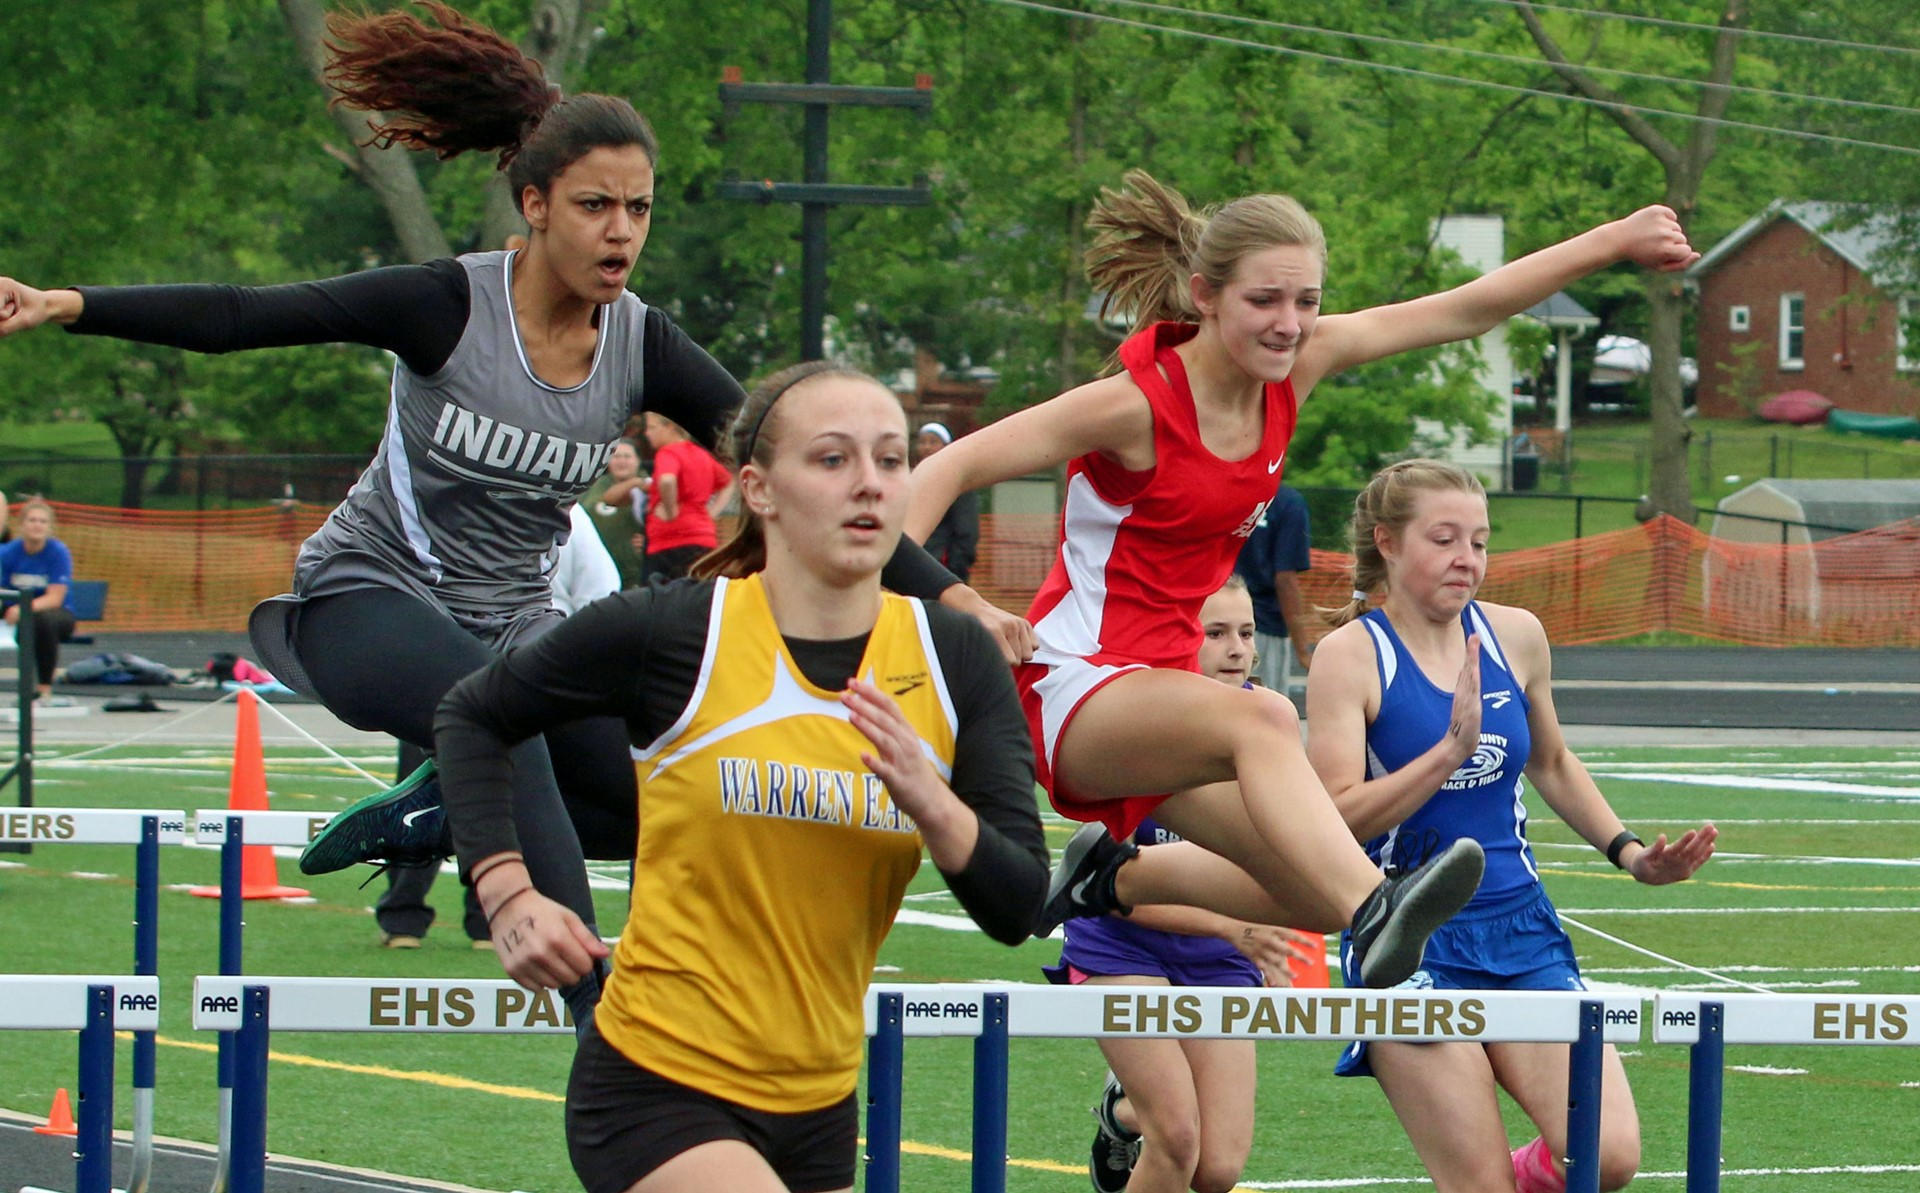 Up and over a hurdle at Region track.